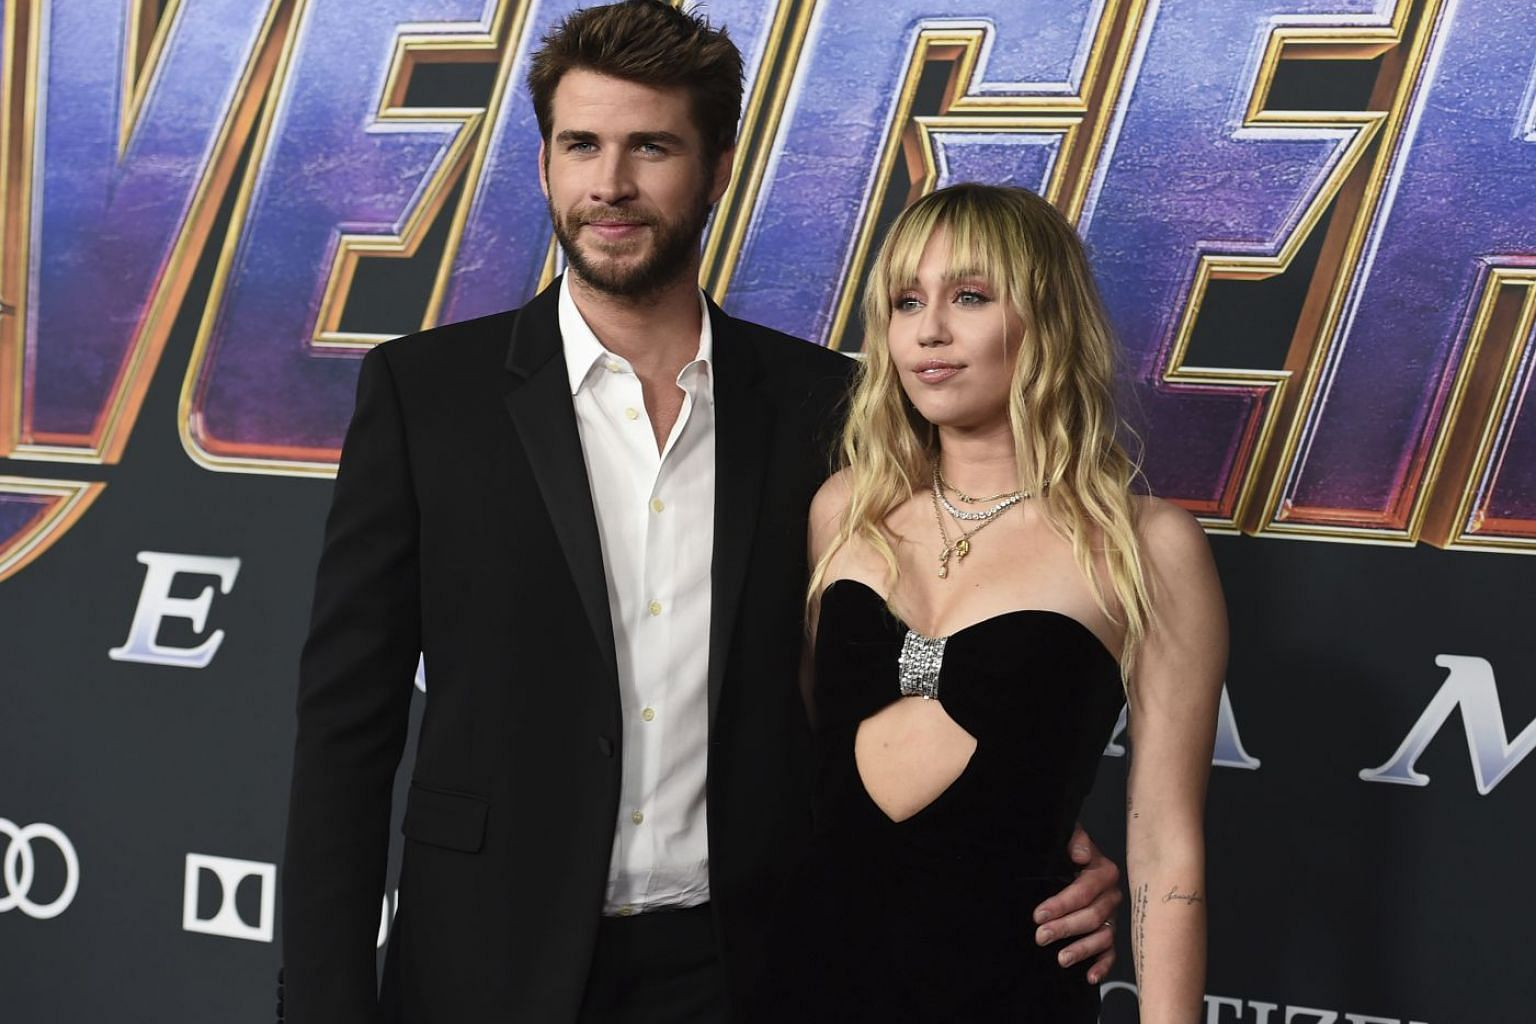 Liam Hemsworth has filed for divorce after marrying Miley Cyrus seven months ago.